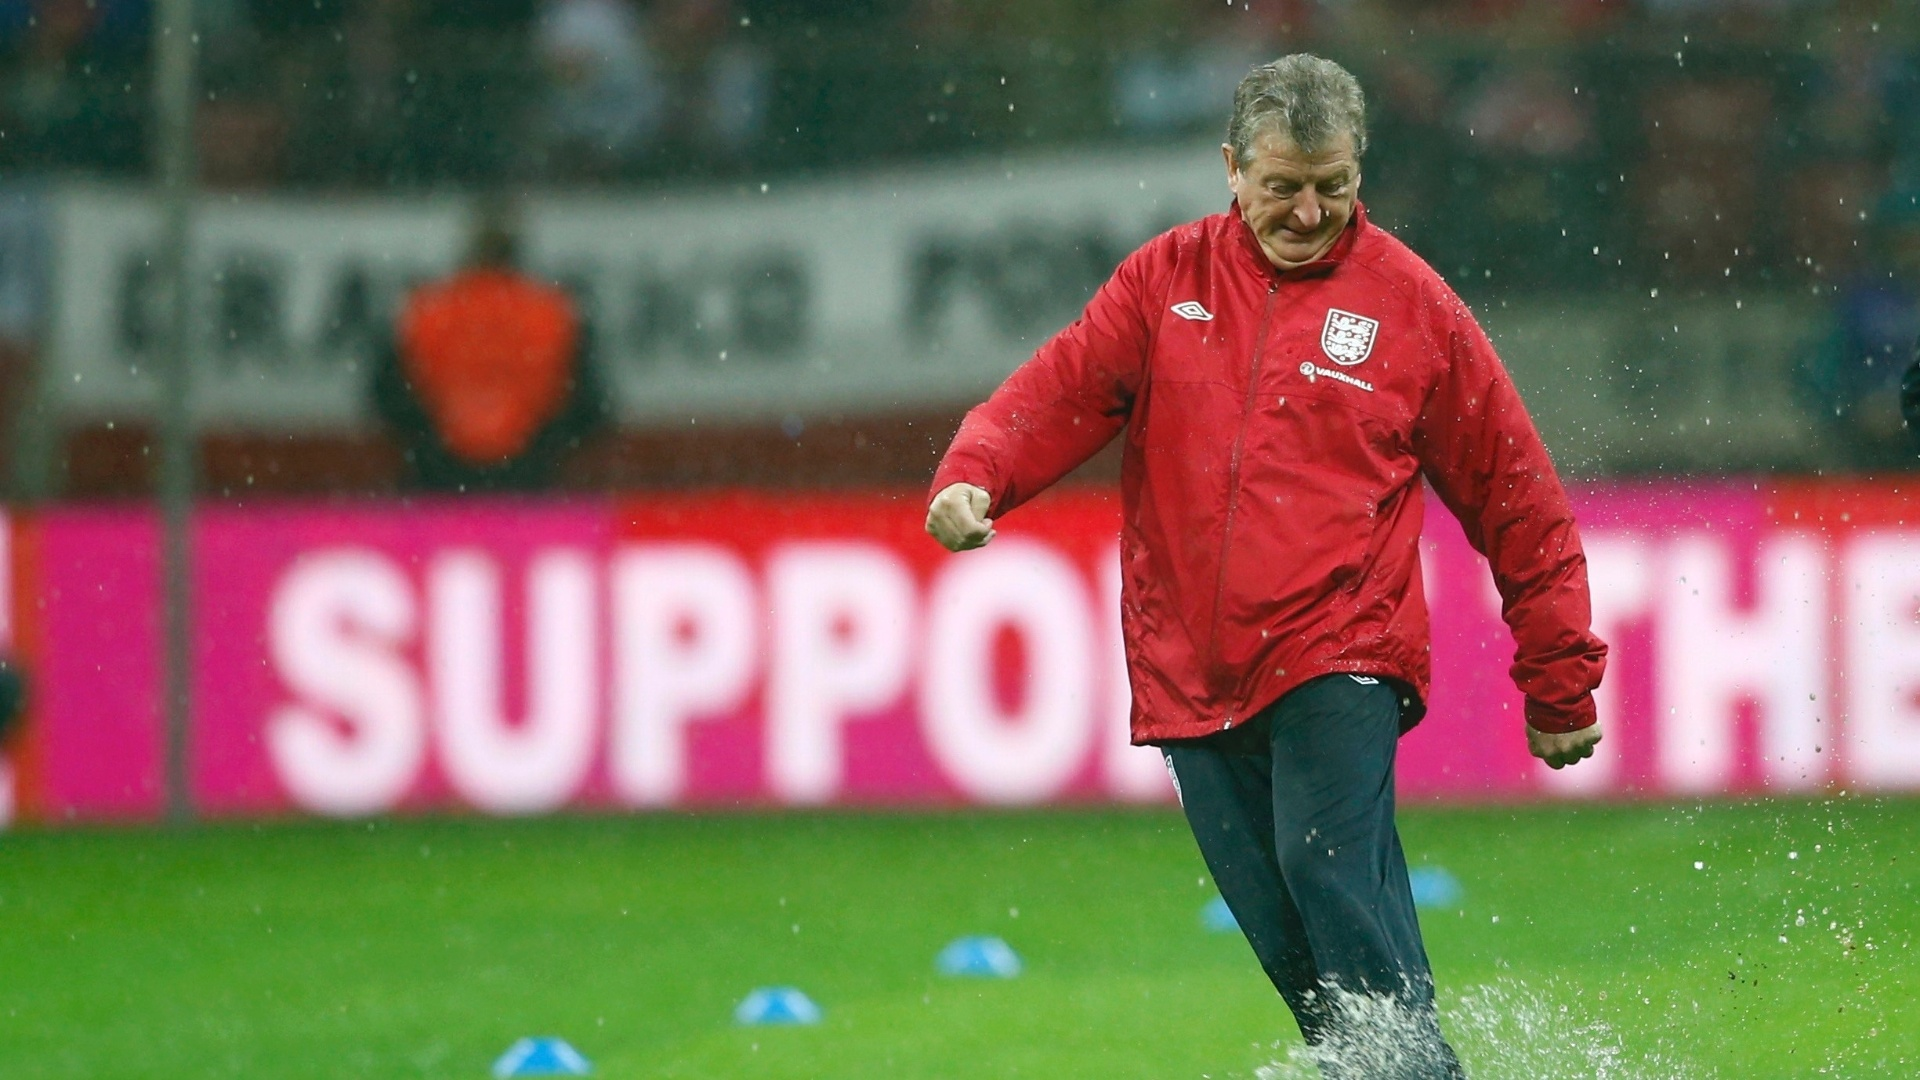 Roy Hodgson, tcnico da seleo da Inglaterra, tenta chutar uma bola no gramado encharcado do estdio de Varsvia, onde a equipe enfrentar a Polnia pelas eliminatrias